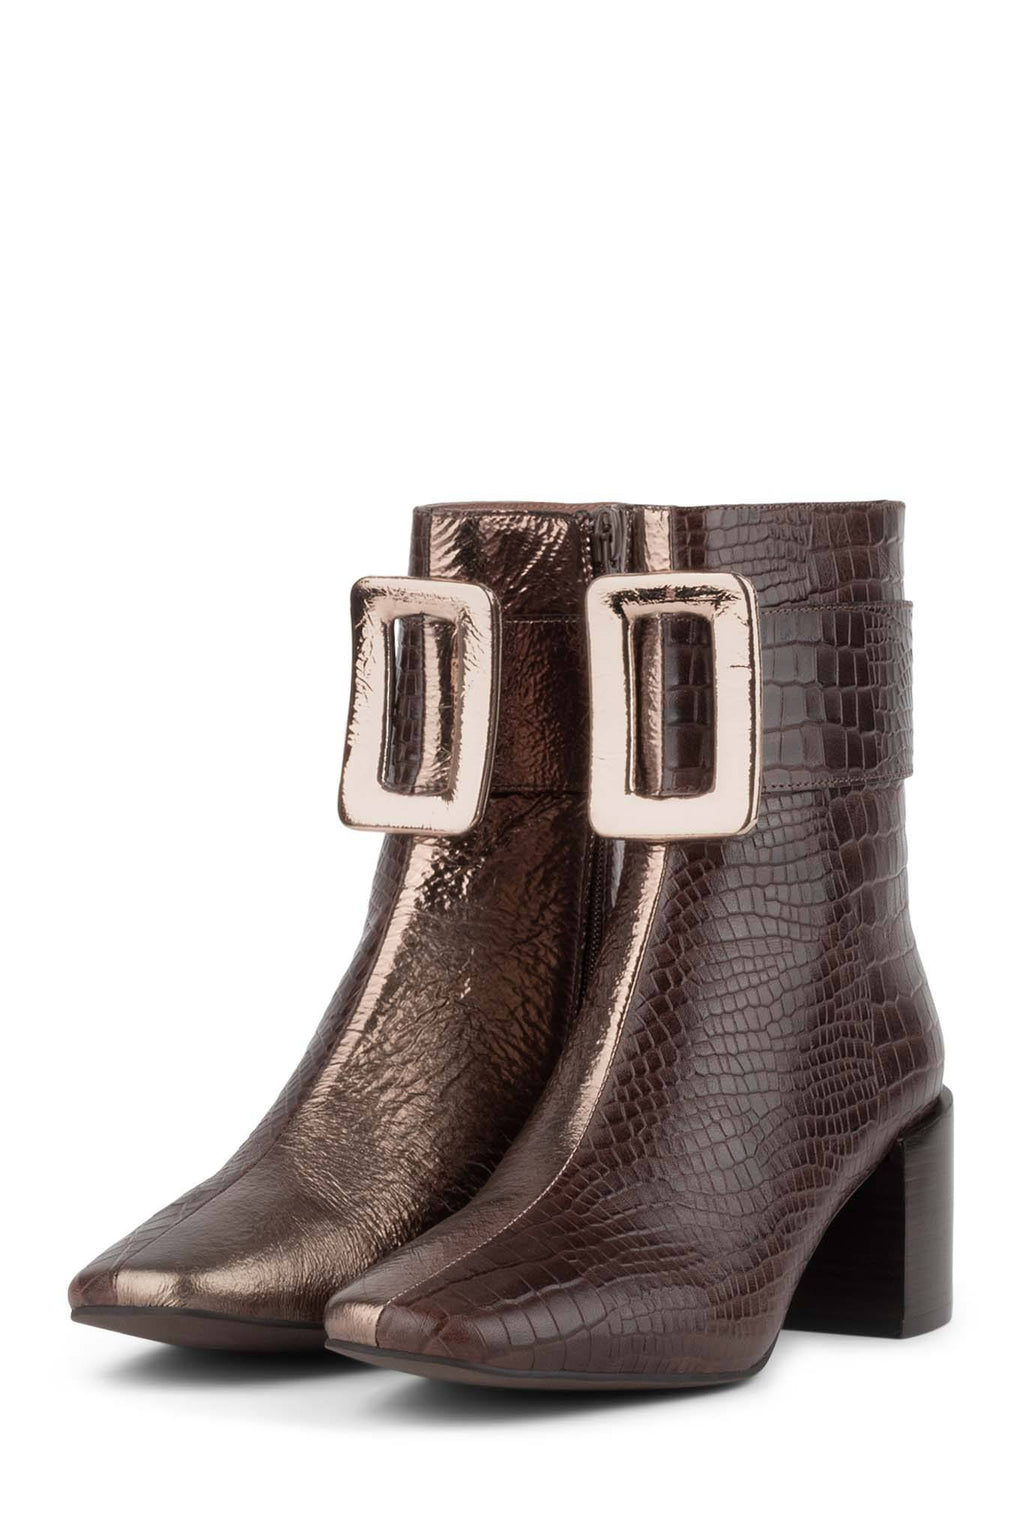 GODARD Heeled Boot YYH Brown Croco Bronze 6